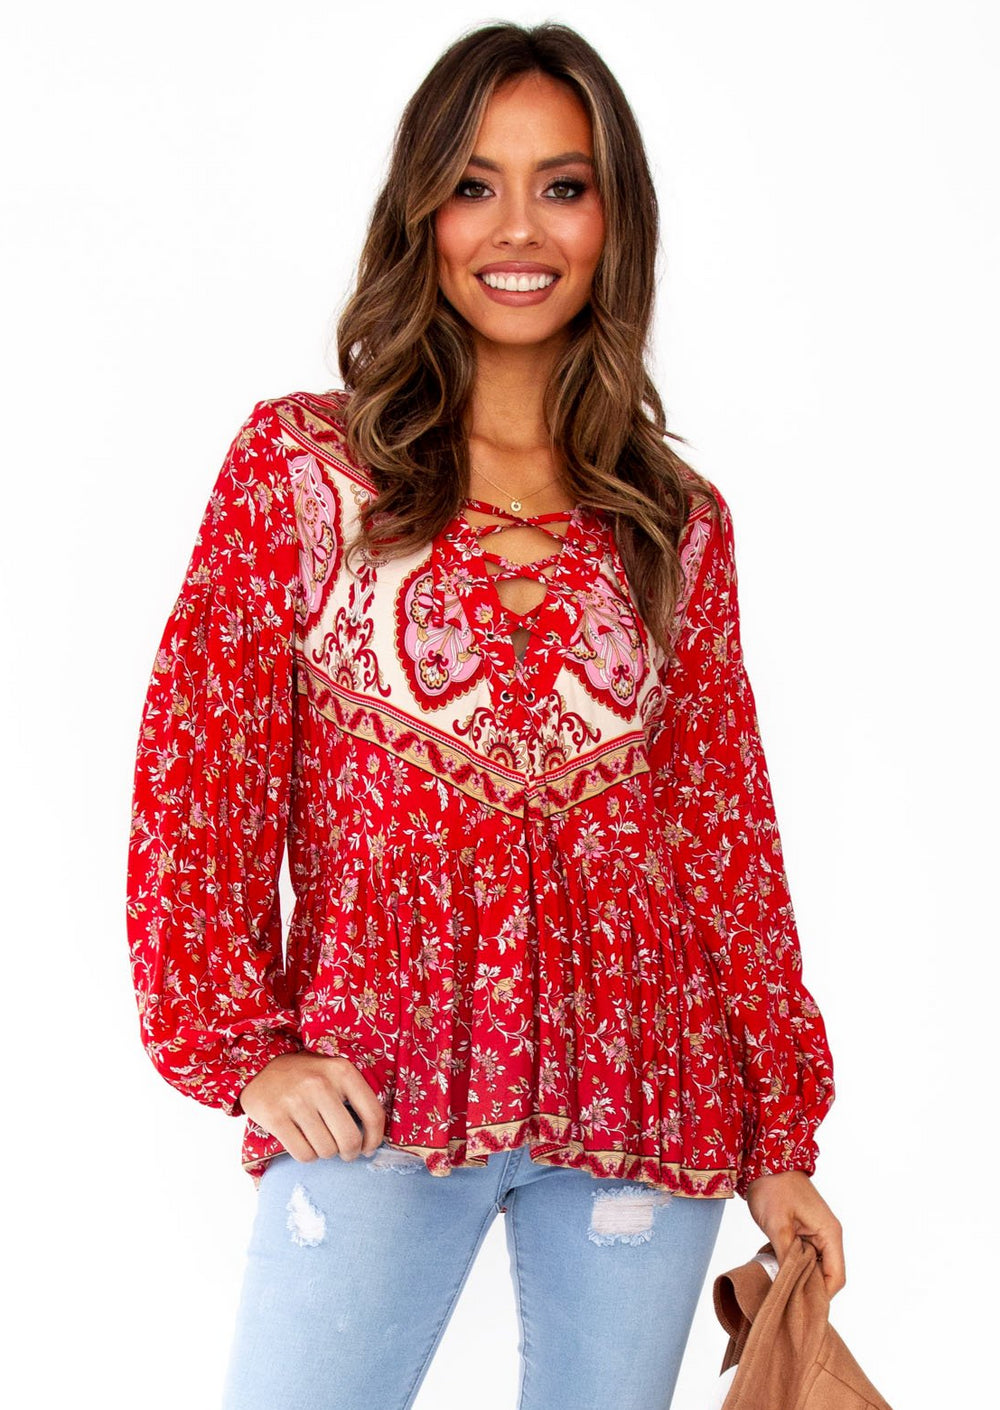 Women's Calm Waves Boho Peasant Blouse  - Mumbai - Red Floral